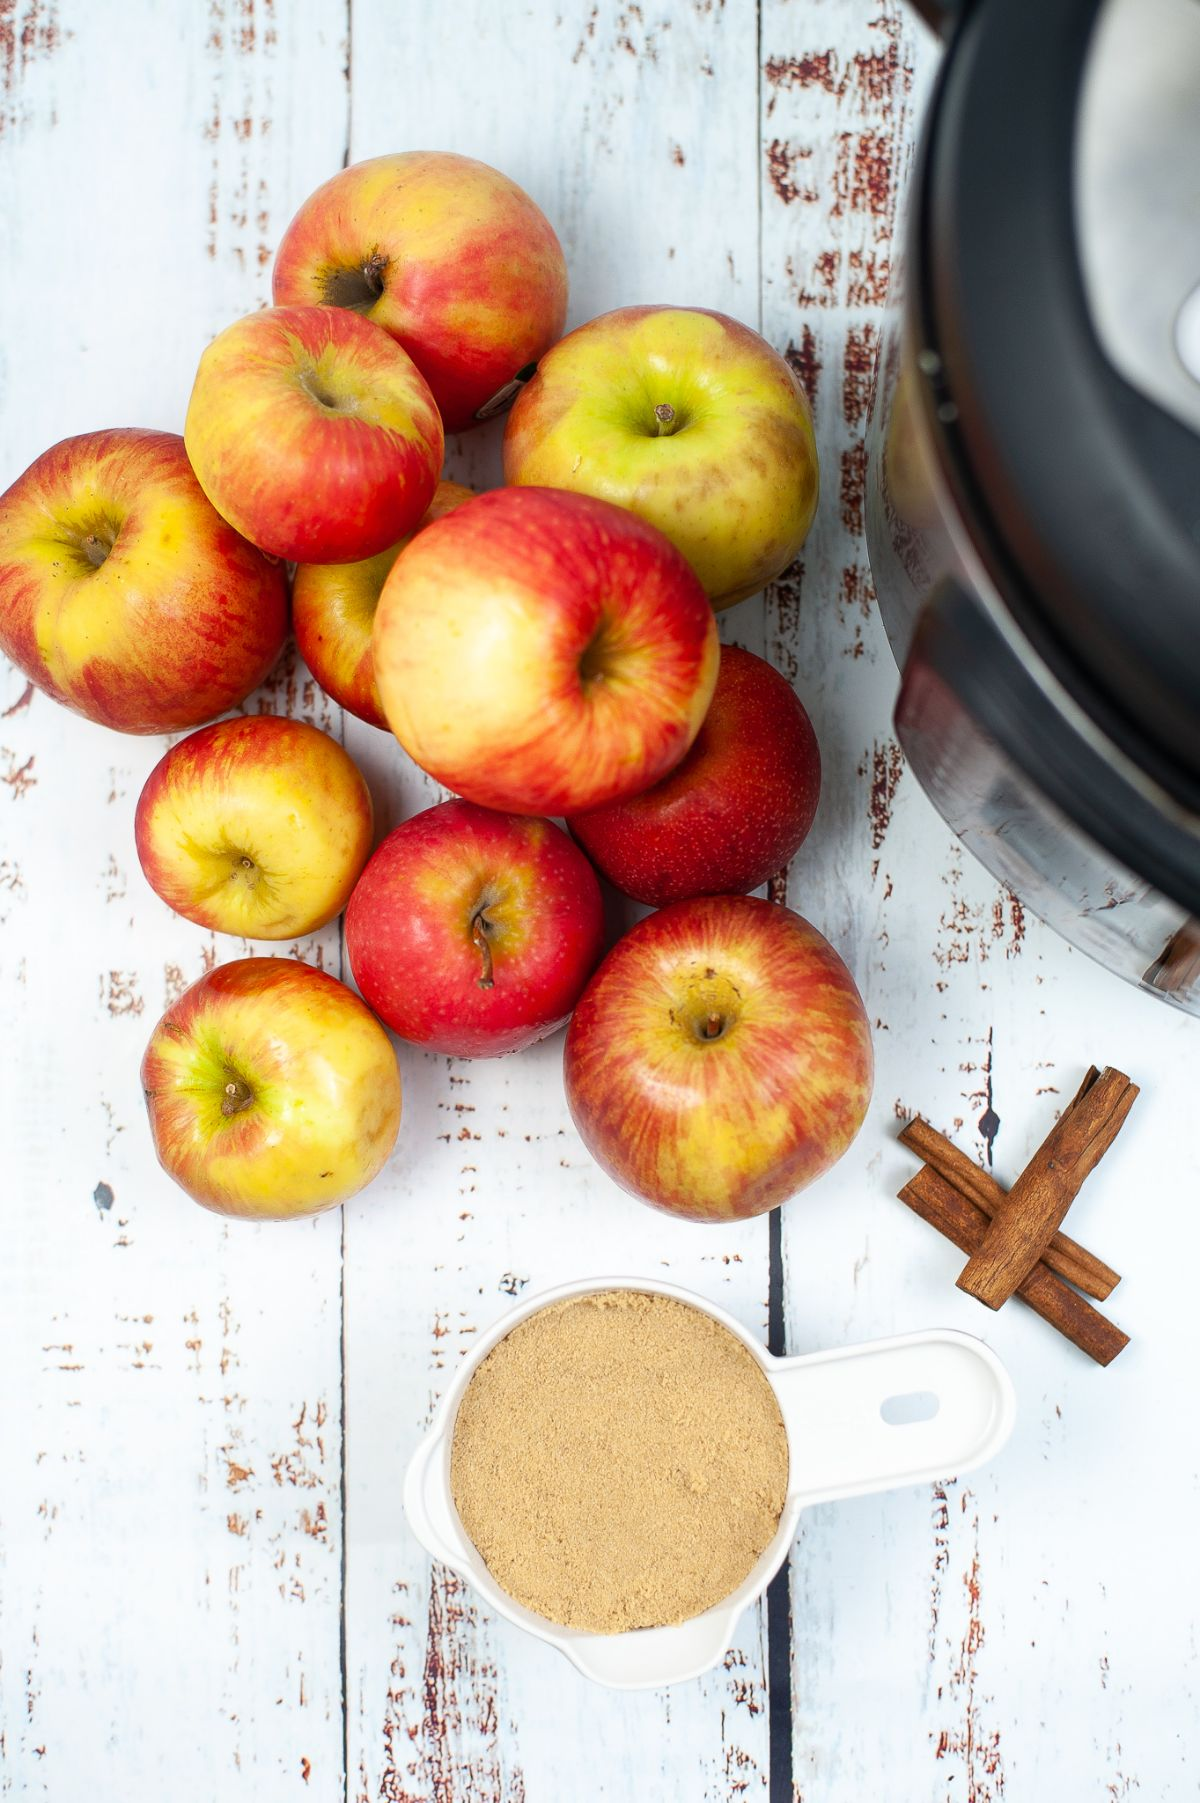 A vertical image of ingredients needed to make Instant Pot Apple Cider